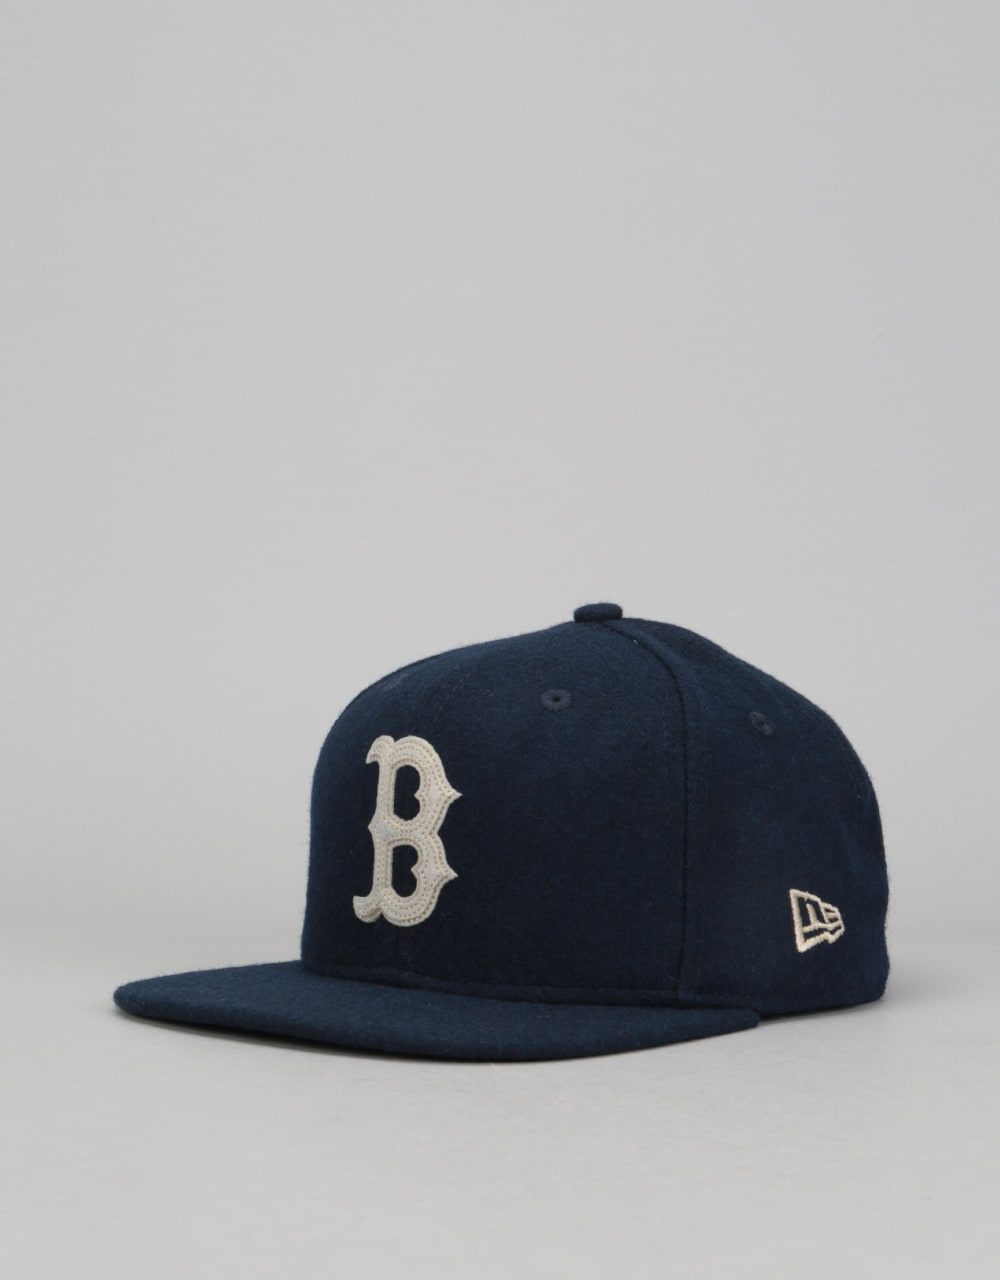 New Era 9Fifty MLB Boston Red Sox Melton Snapback Cap - Navy ... 689976c4092